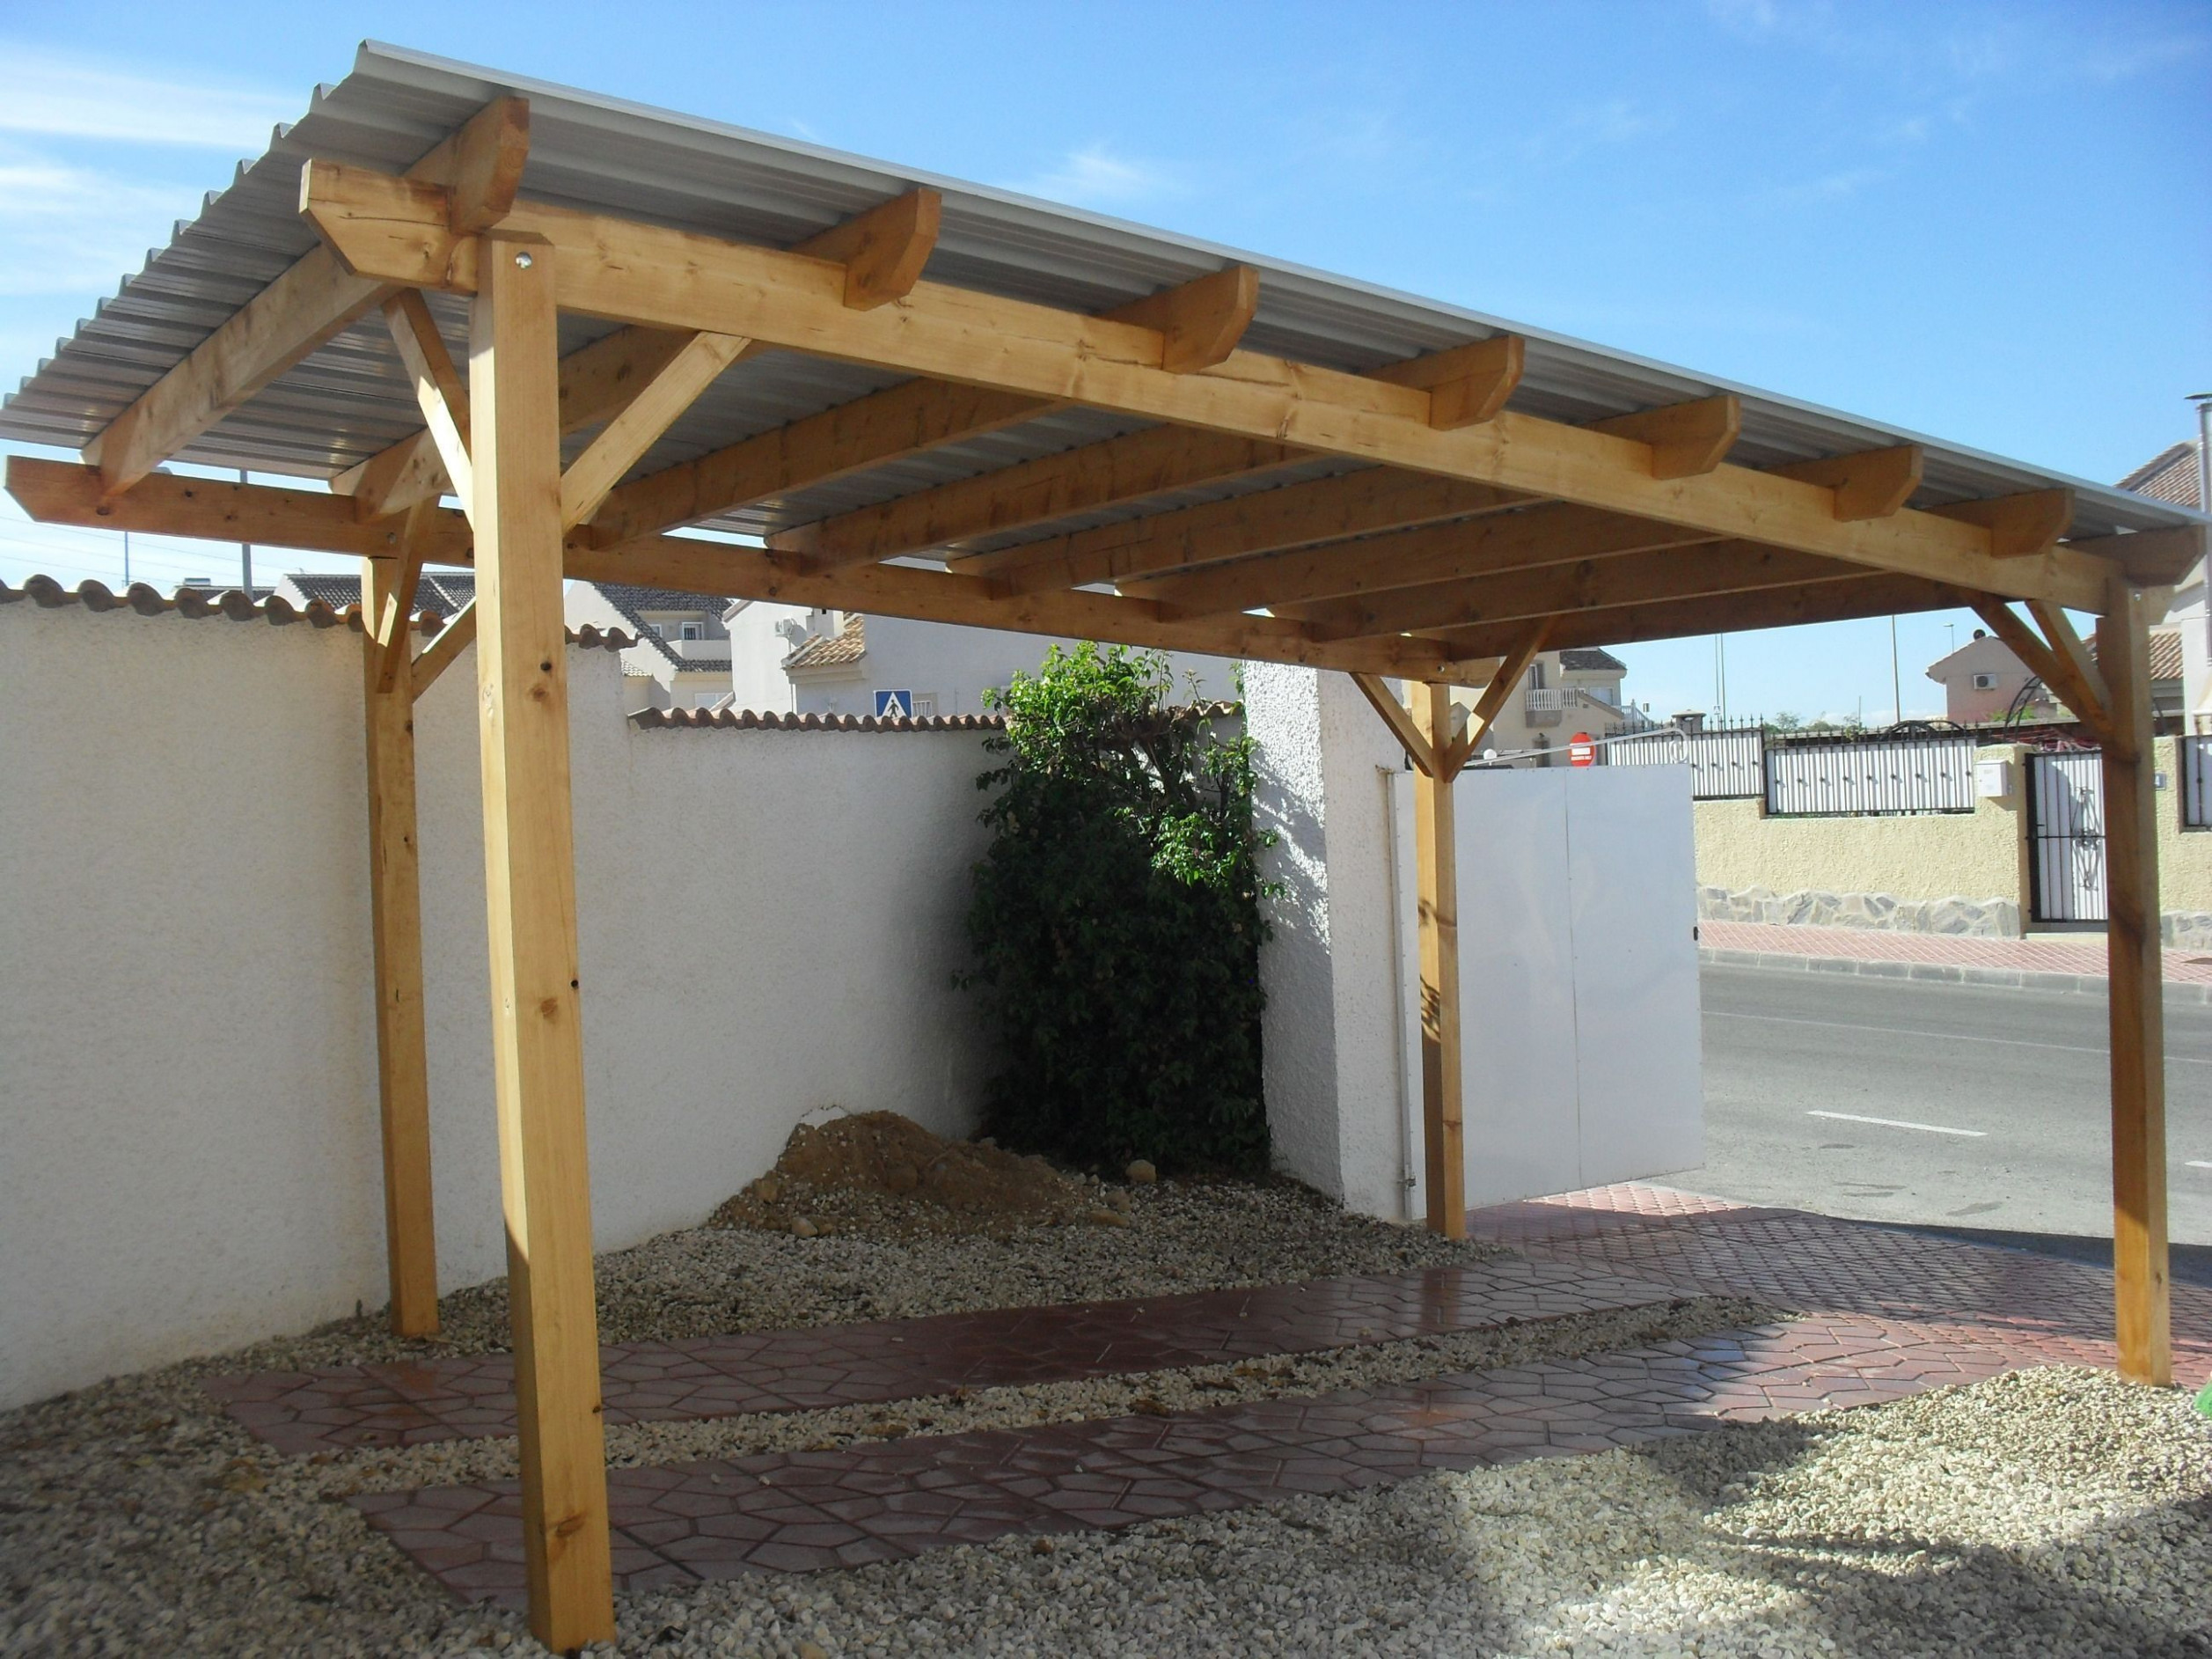 Adorable Home Depot Carport Kits On Carports Metal Roof ..